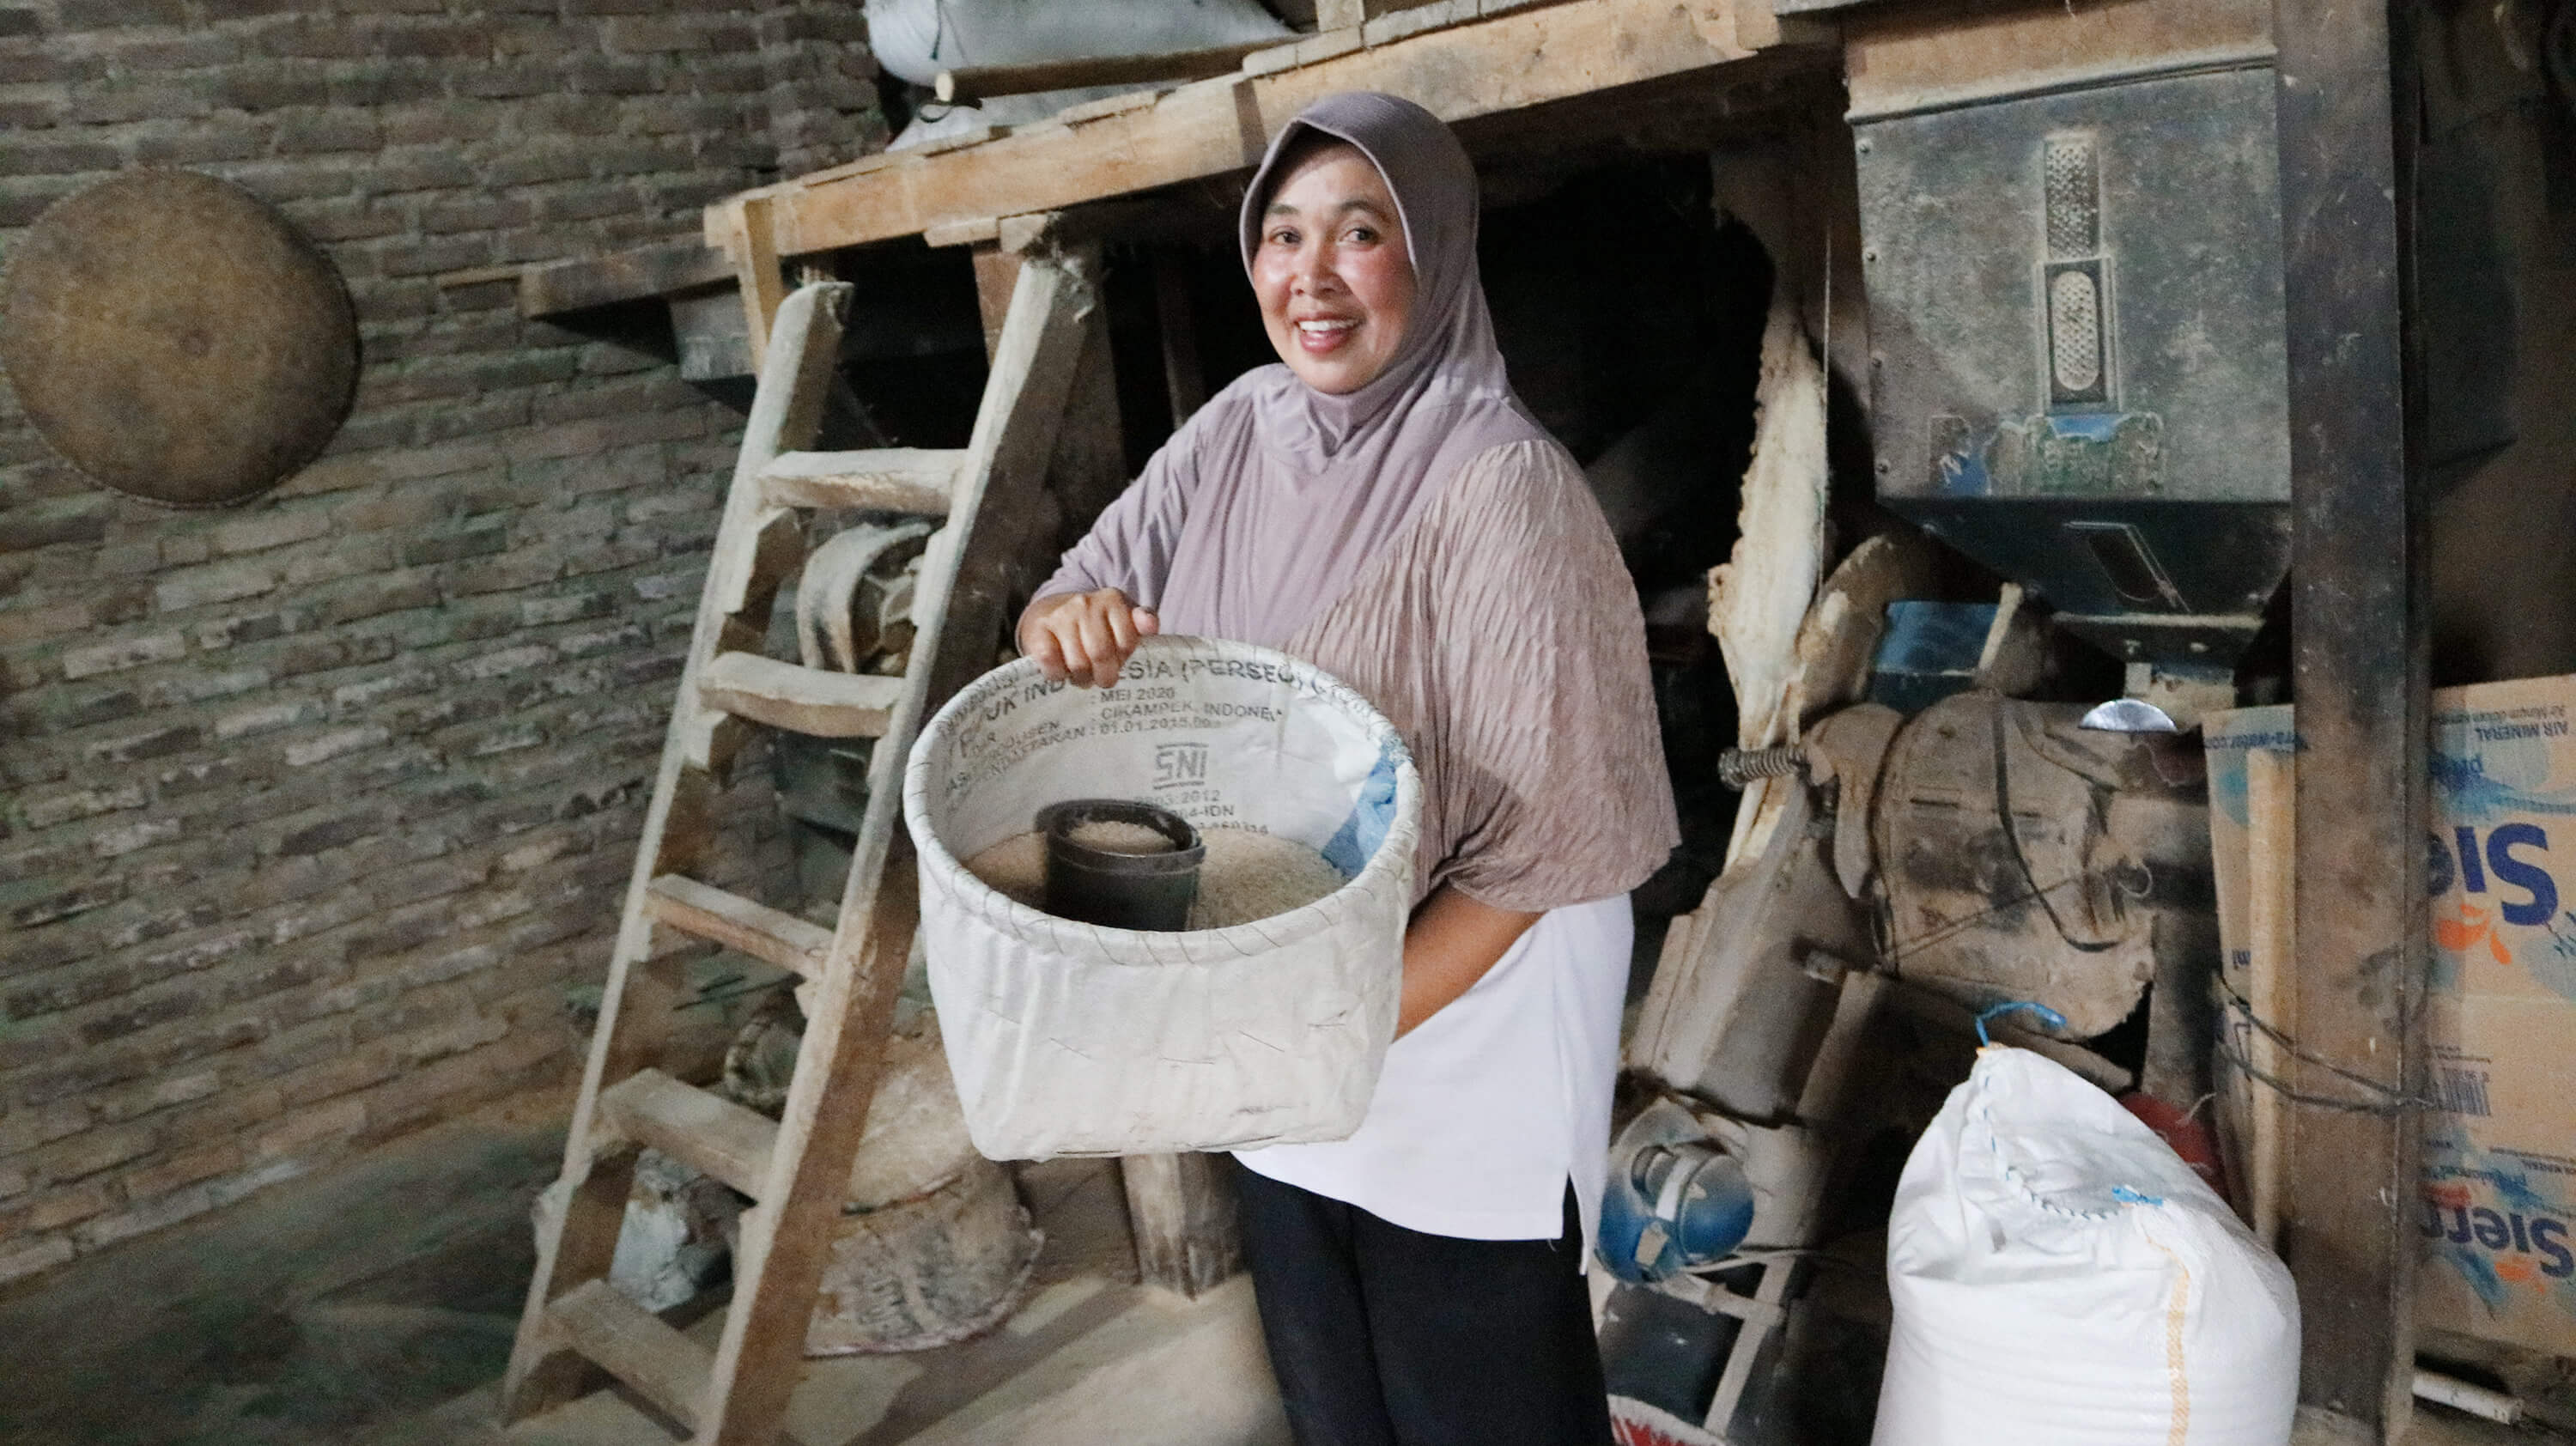 "Ibu Oom owns a rice mill with her family in the village of Majalaya, West Java. She joined BAV's Joint Liability Group in 2017 to access working capital to purchase more unhusked rice to be milled. She told us, ""I managed to increase the amount of unhusked rice to be milled every week and witnessed a positive growth in my family's rice milling business."" In the future, she hopes that her loan amount will increase and that she will have more information about the market so that she can expand her business."